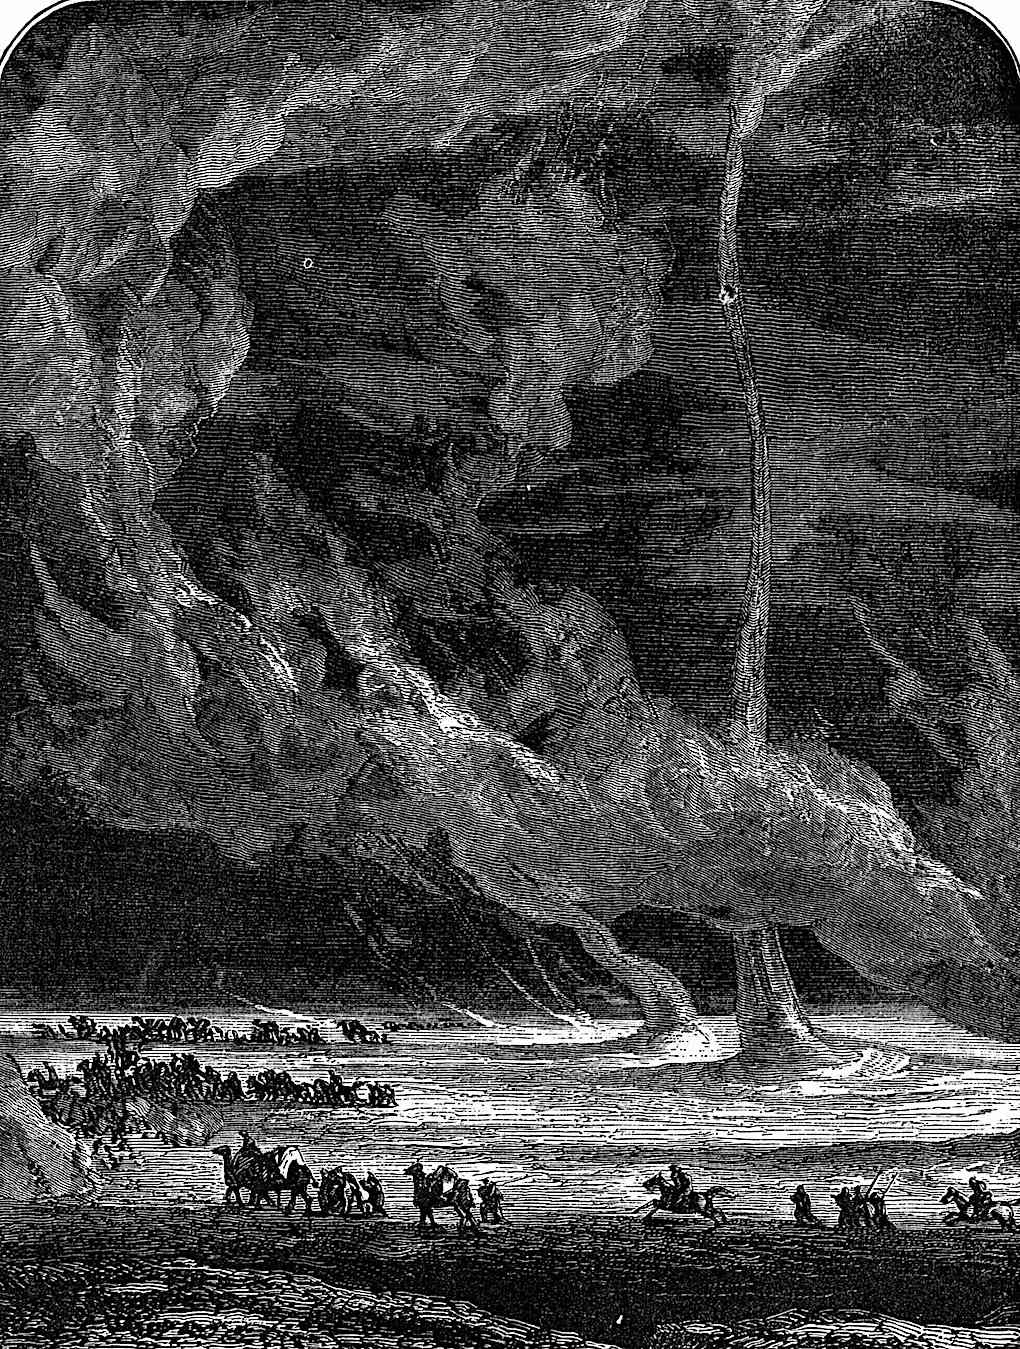 an illustration of sand twisters for a Camille Flammarion science book